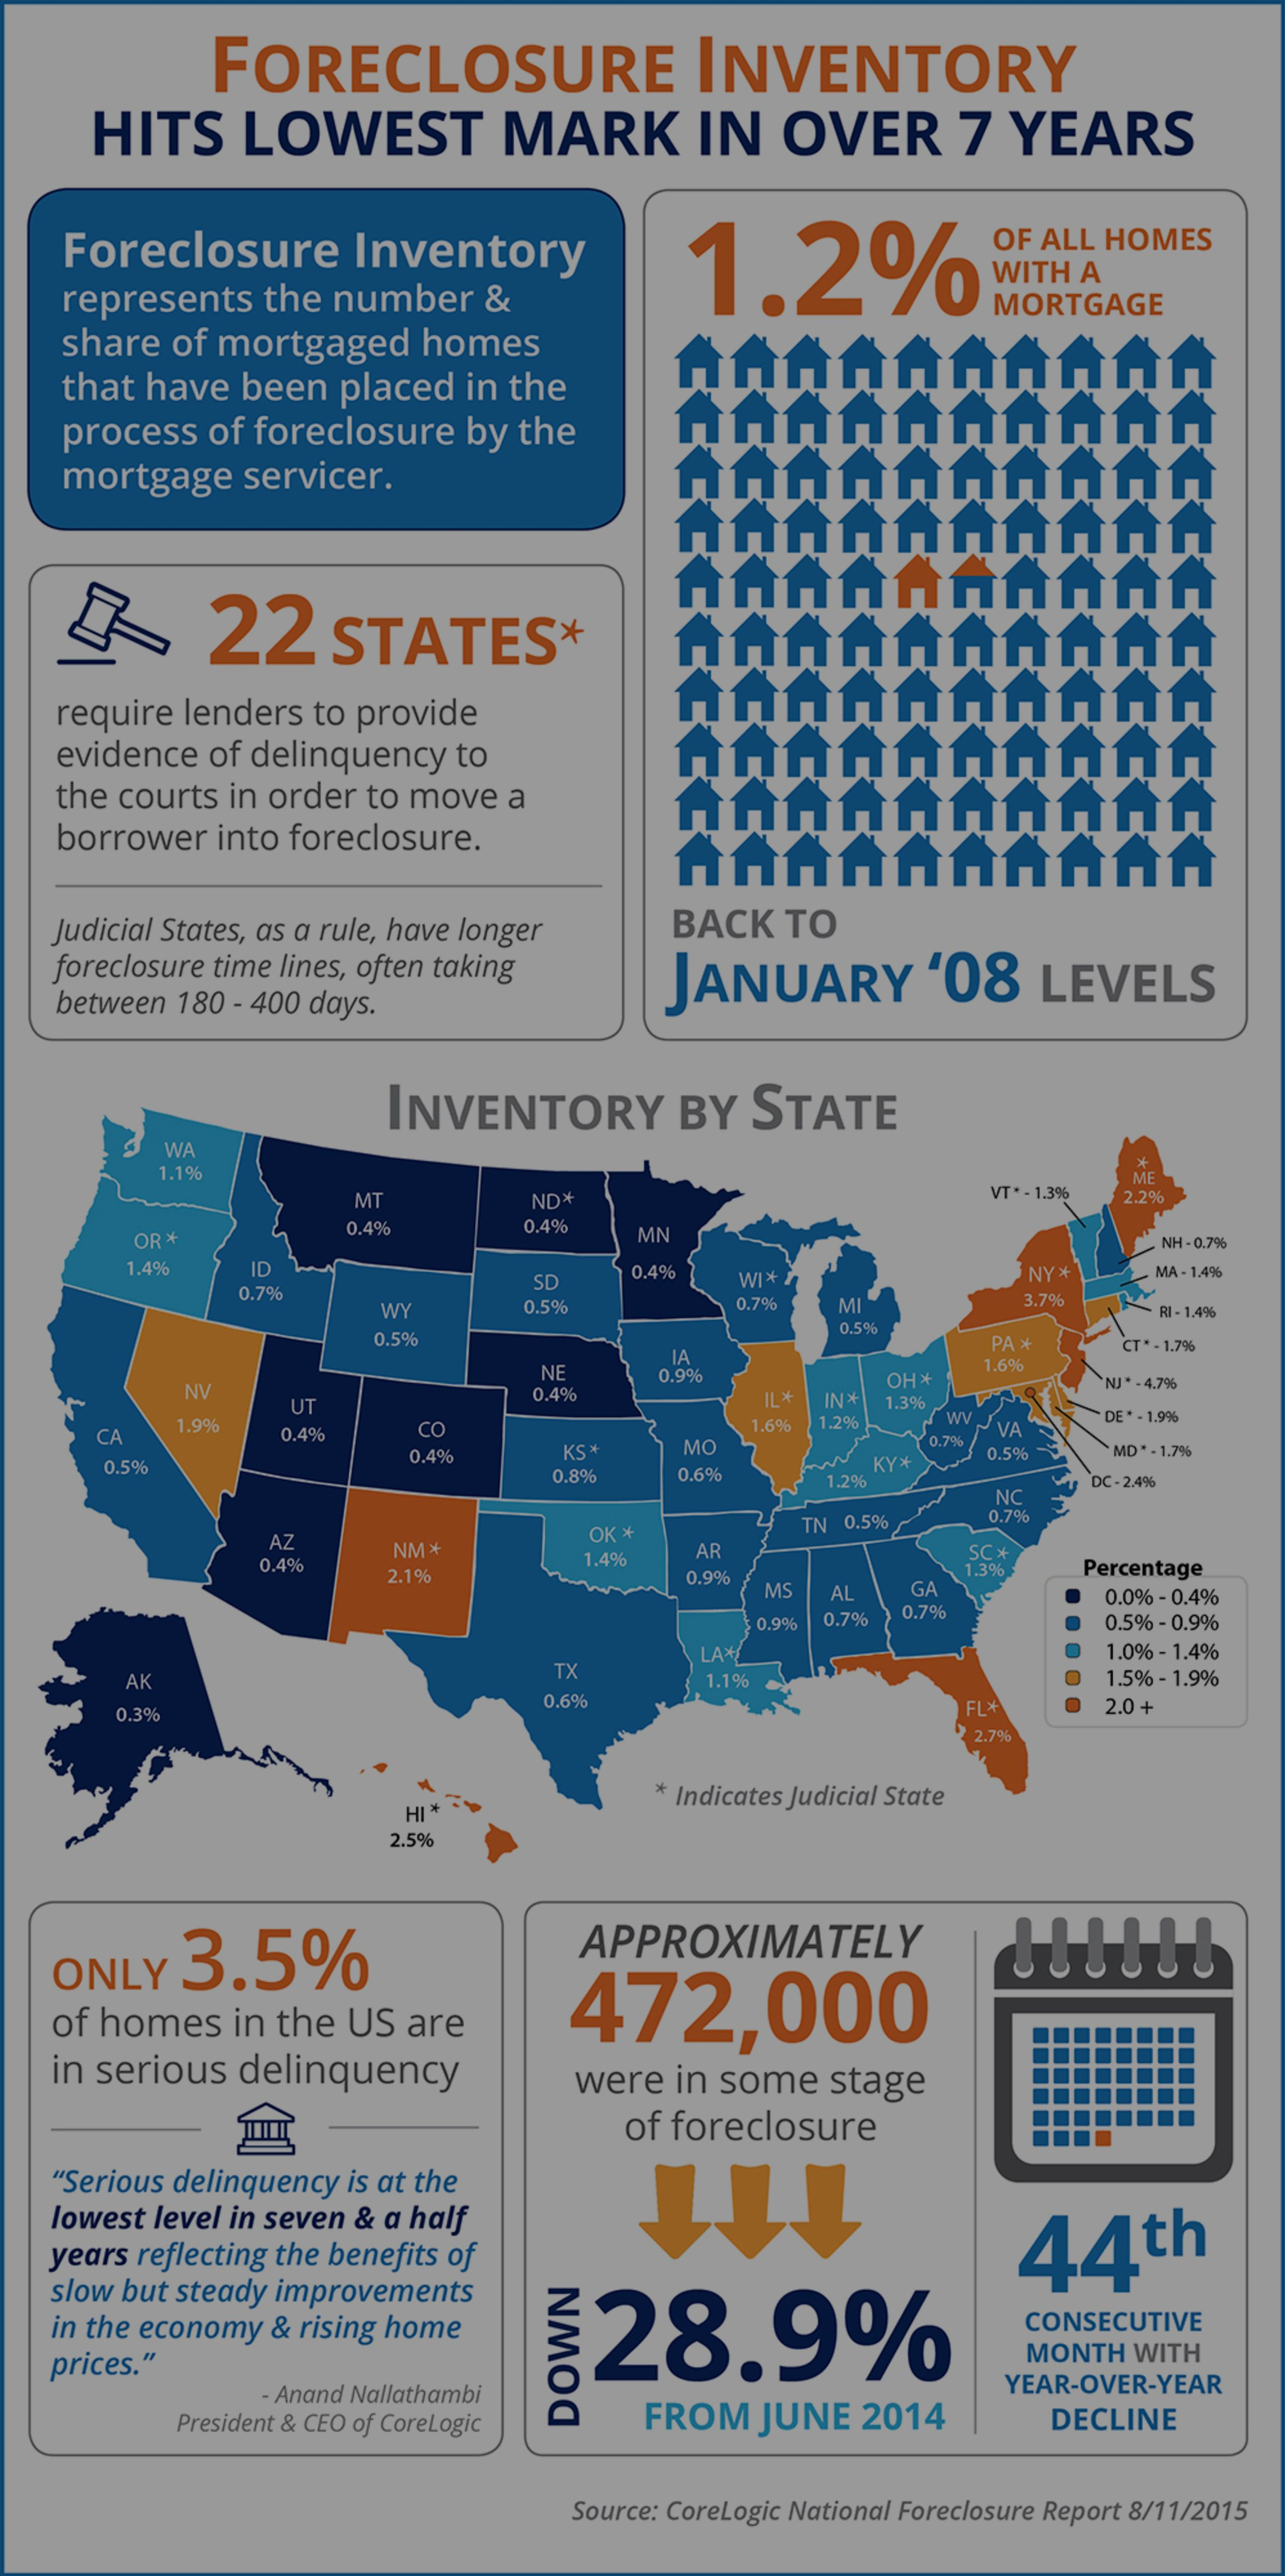 Foreclosure Inventory Hits Lowest Mark in Over 7 Years [INFOGRAPHIC]